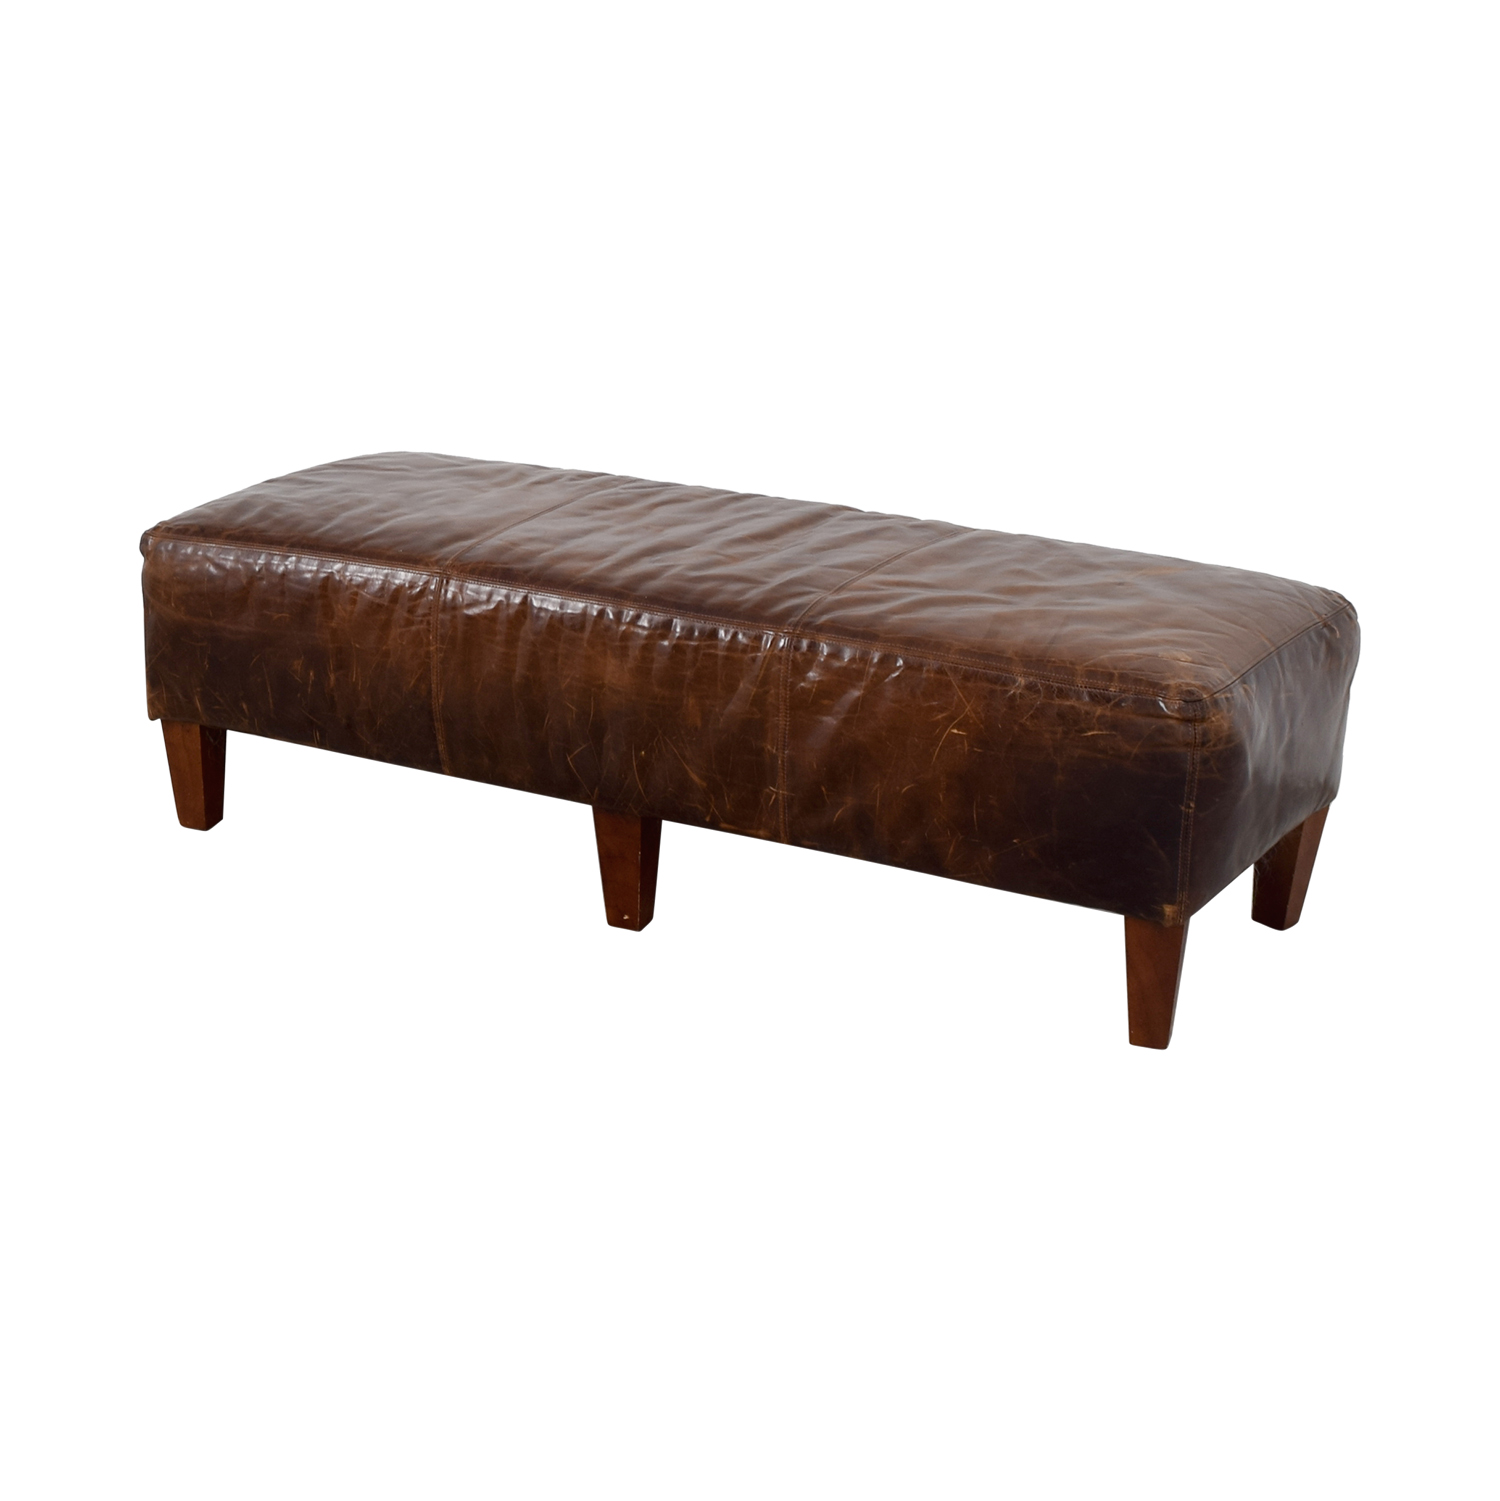 Pottery Barn Pottery Barn Brown Leather Bench